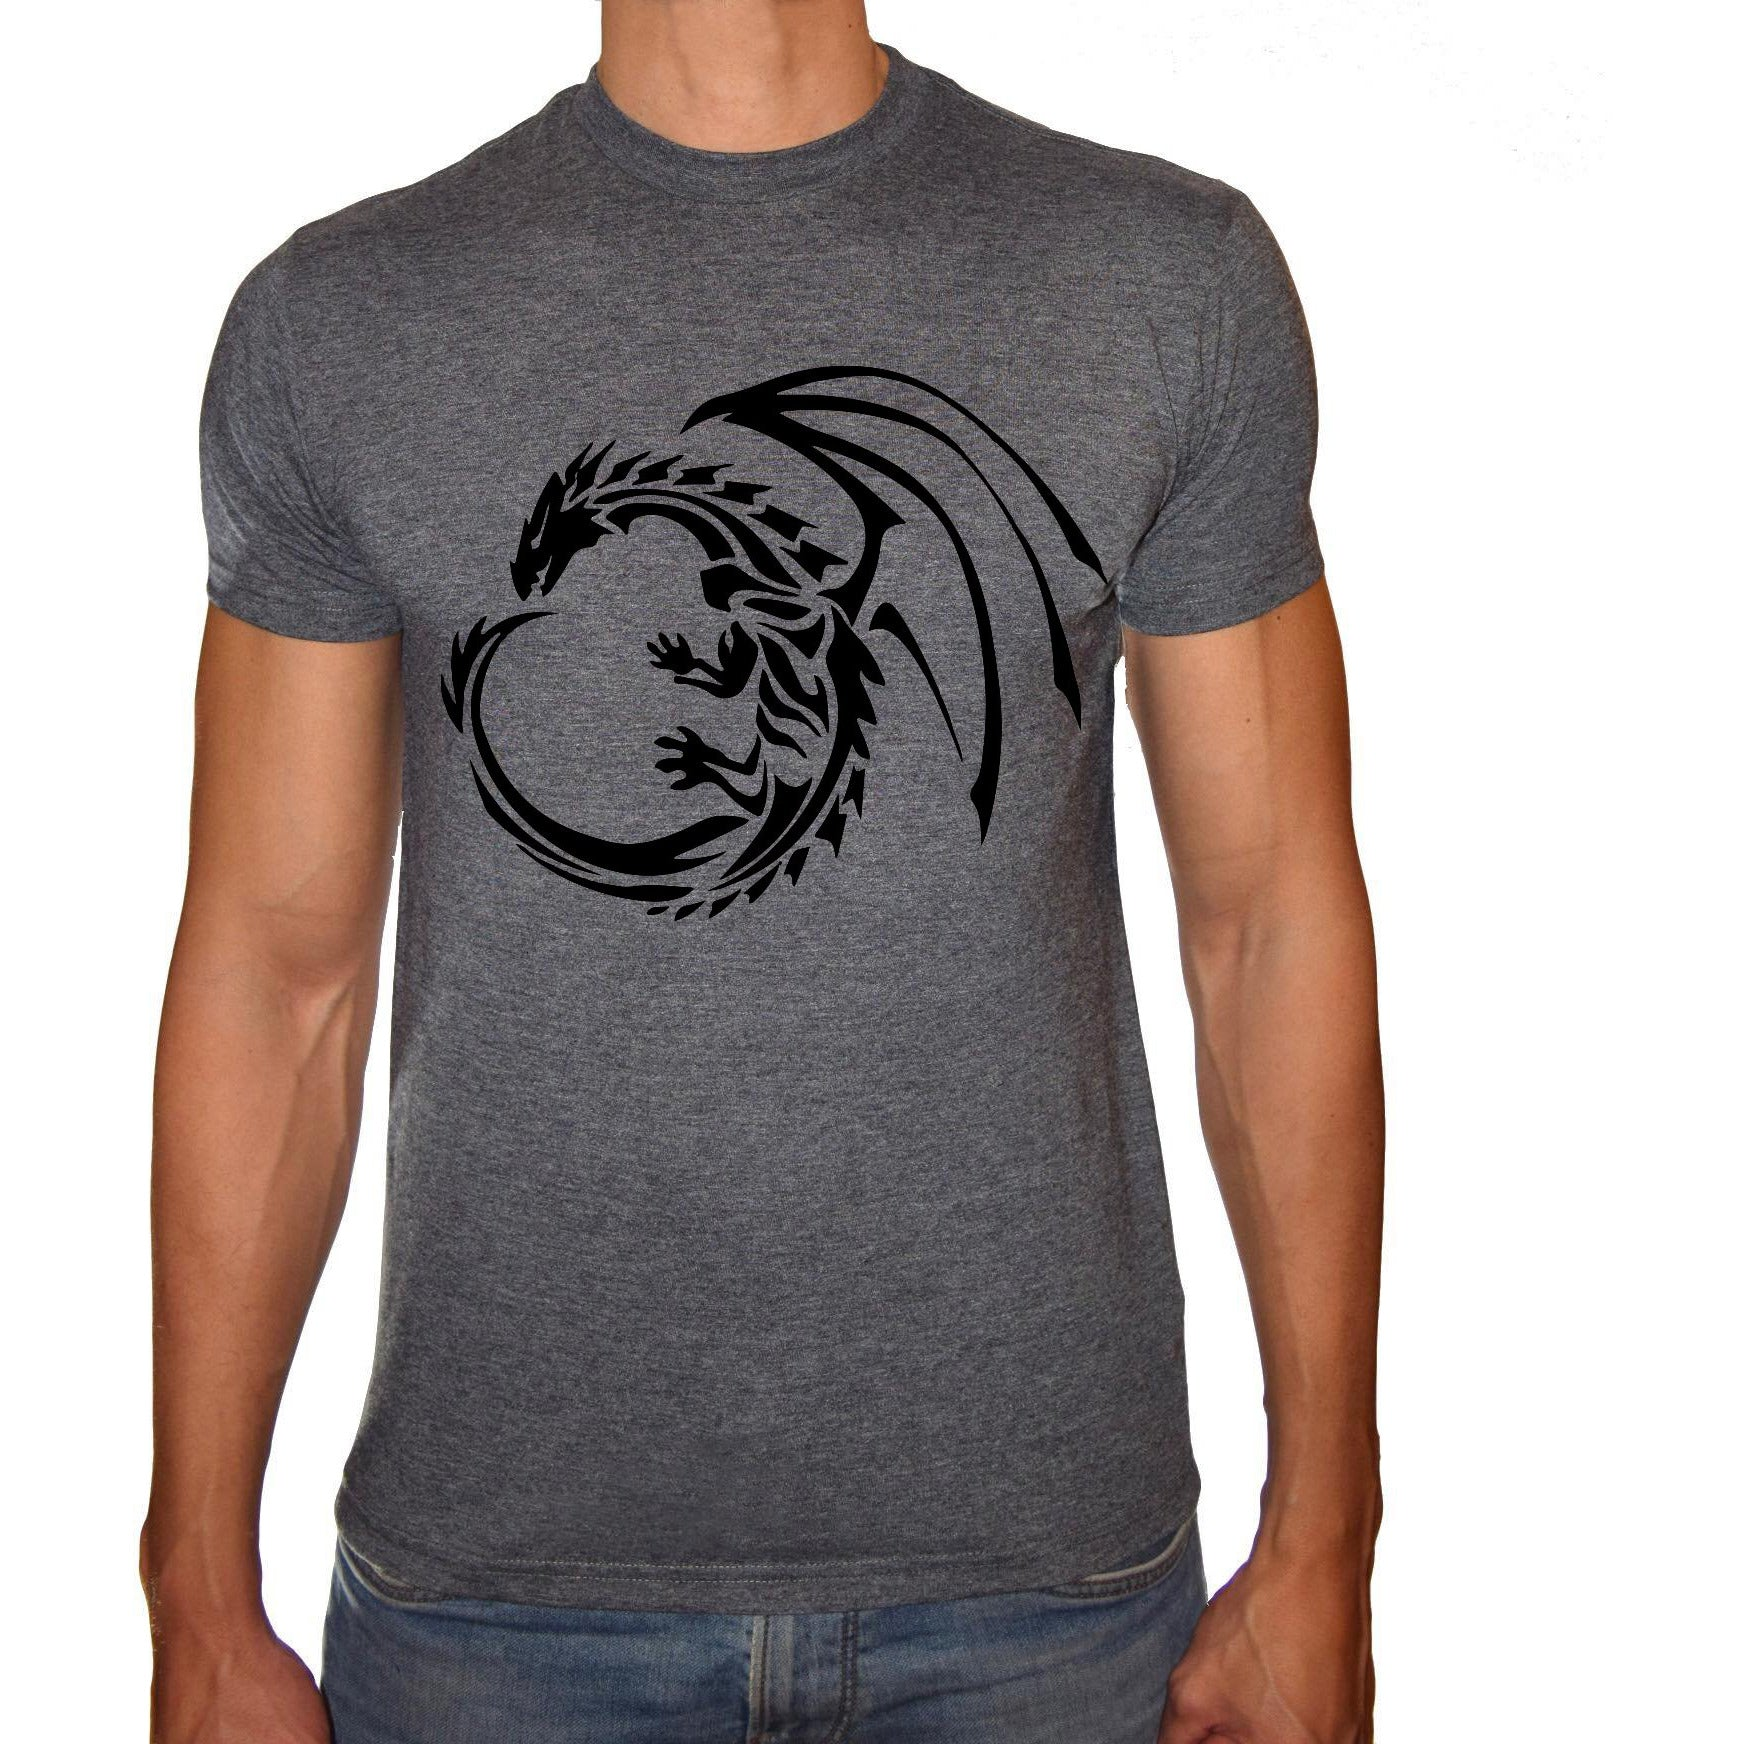 Phoenix CHARCOAL Round Neck Printed T-Shirt Men (Game of thrones - DRAGON)